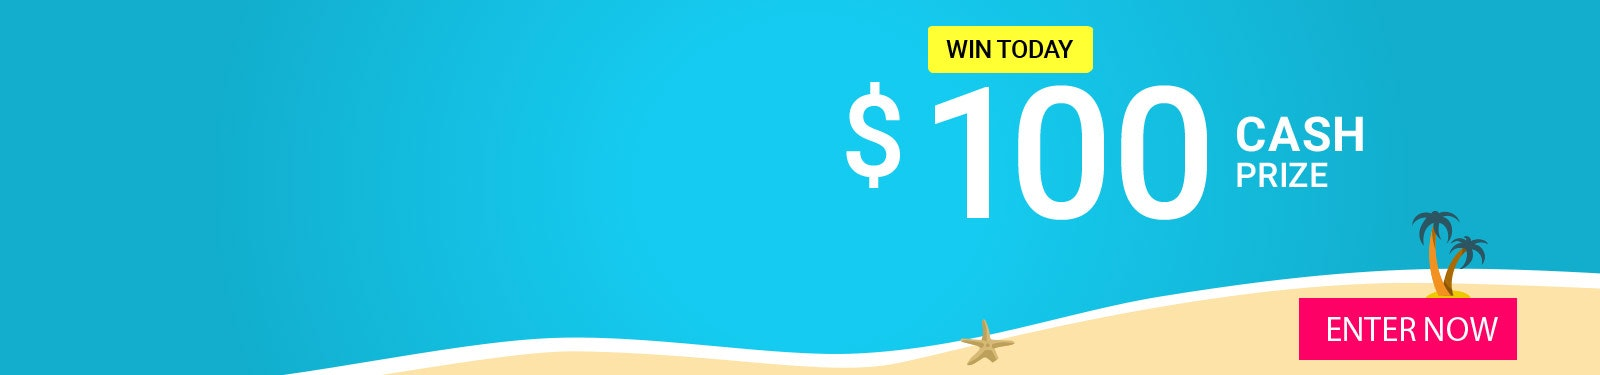 Prize of the Day 8-31 - $100 Cash sweepstakes